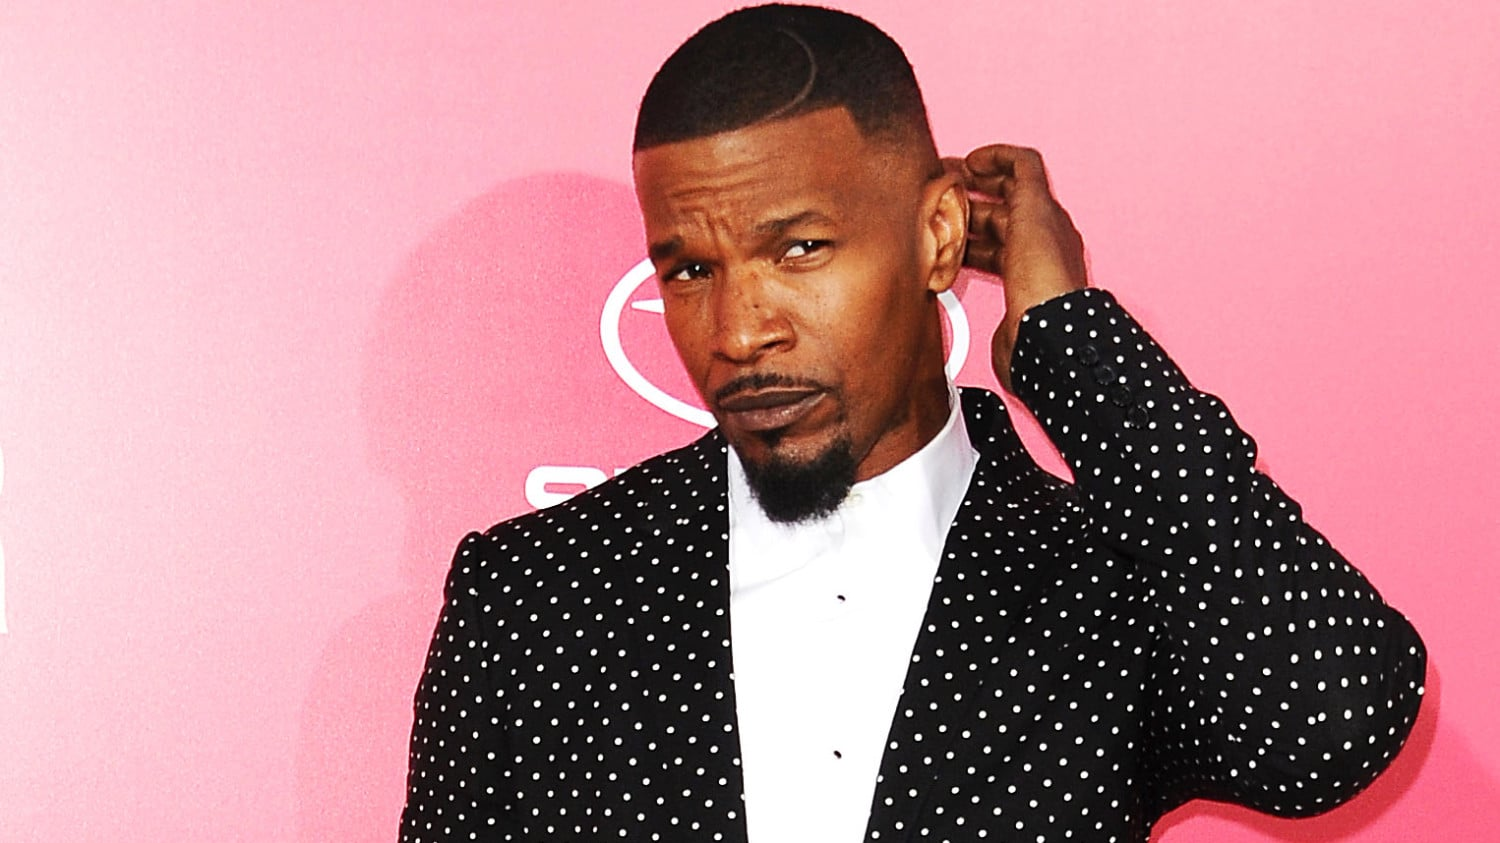 Jamie Foxx American Actor, Singer, Songwriter, Record Producer Comedian